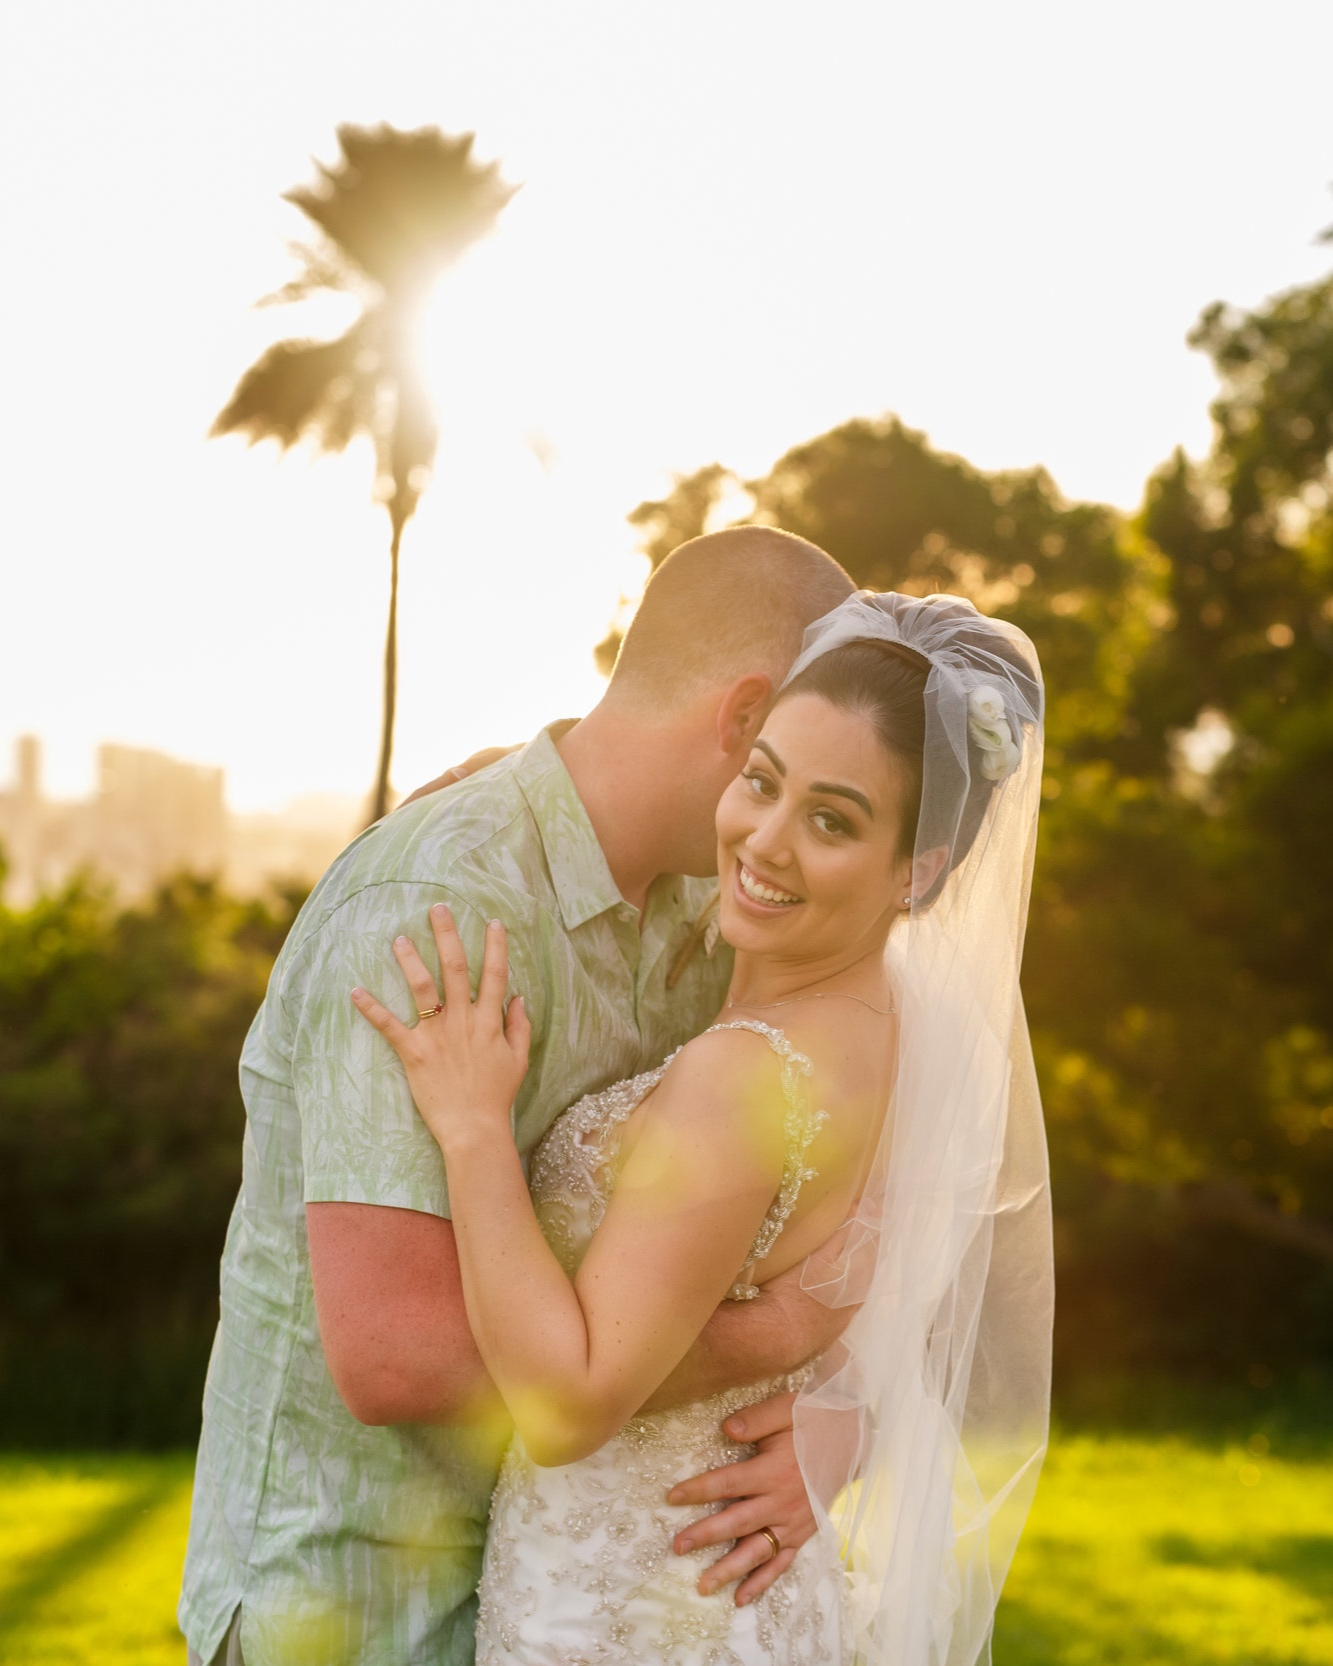 Casey & Garrett  | Nutridge Estate, Honolulu | February 2018 |  Tomas Demenis Photography